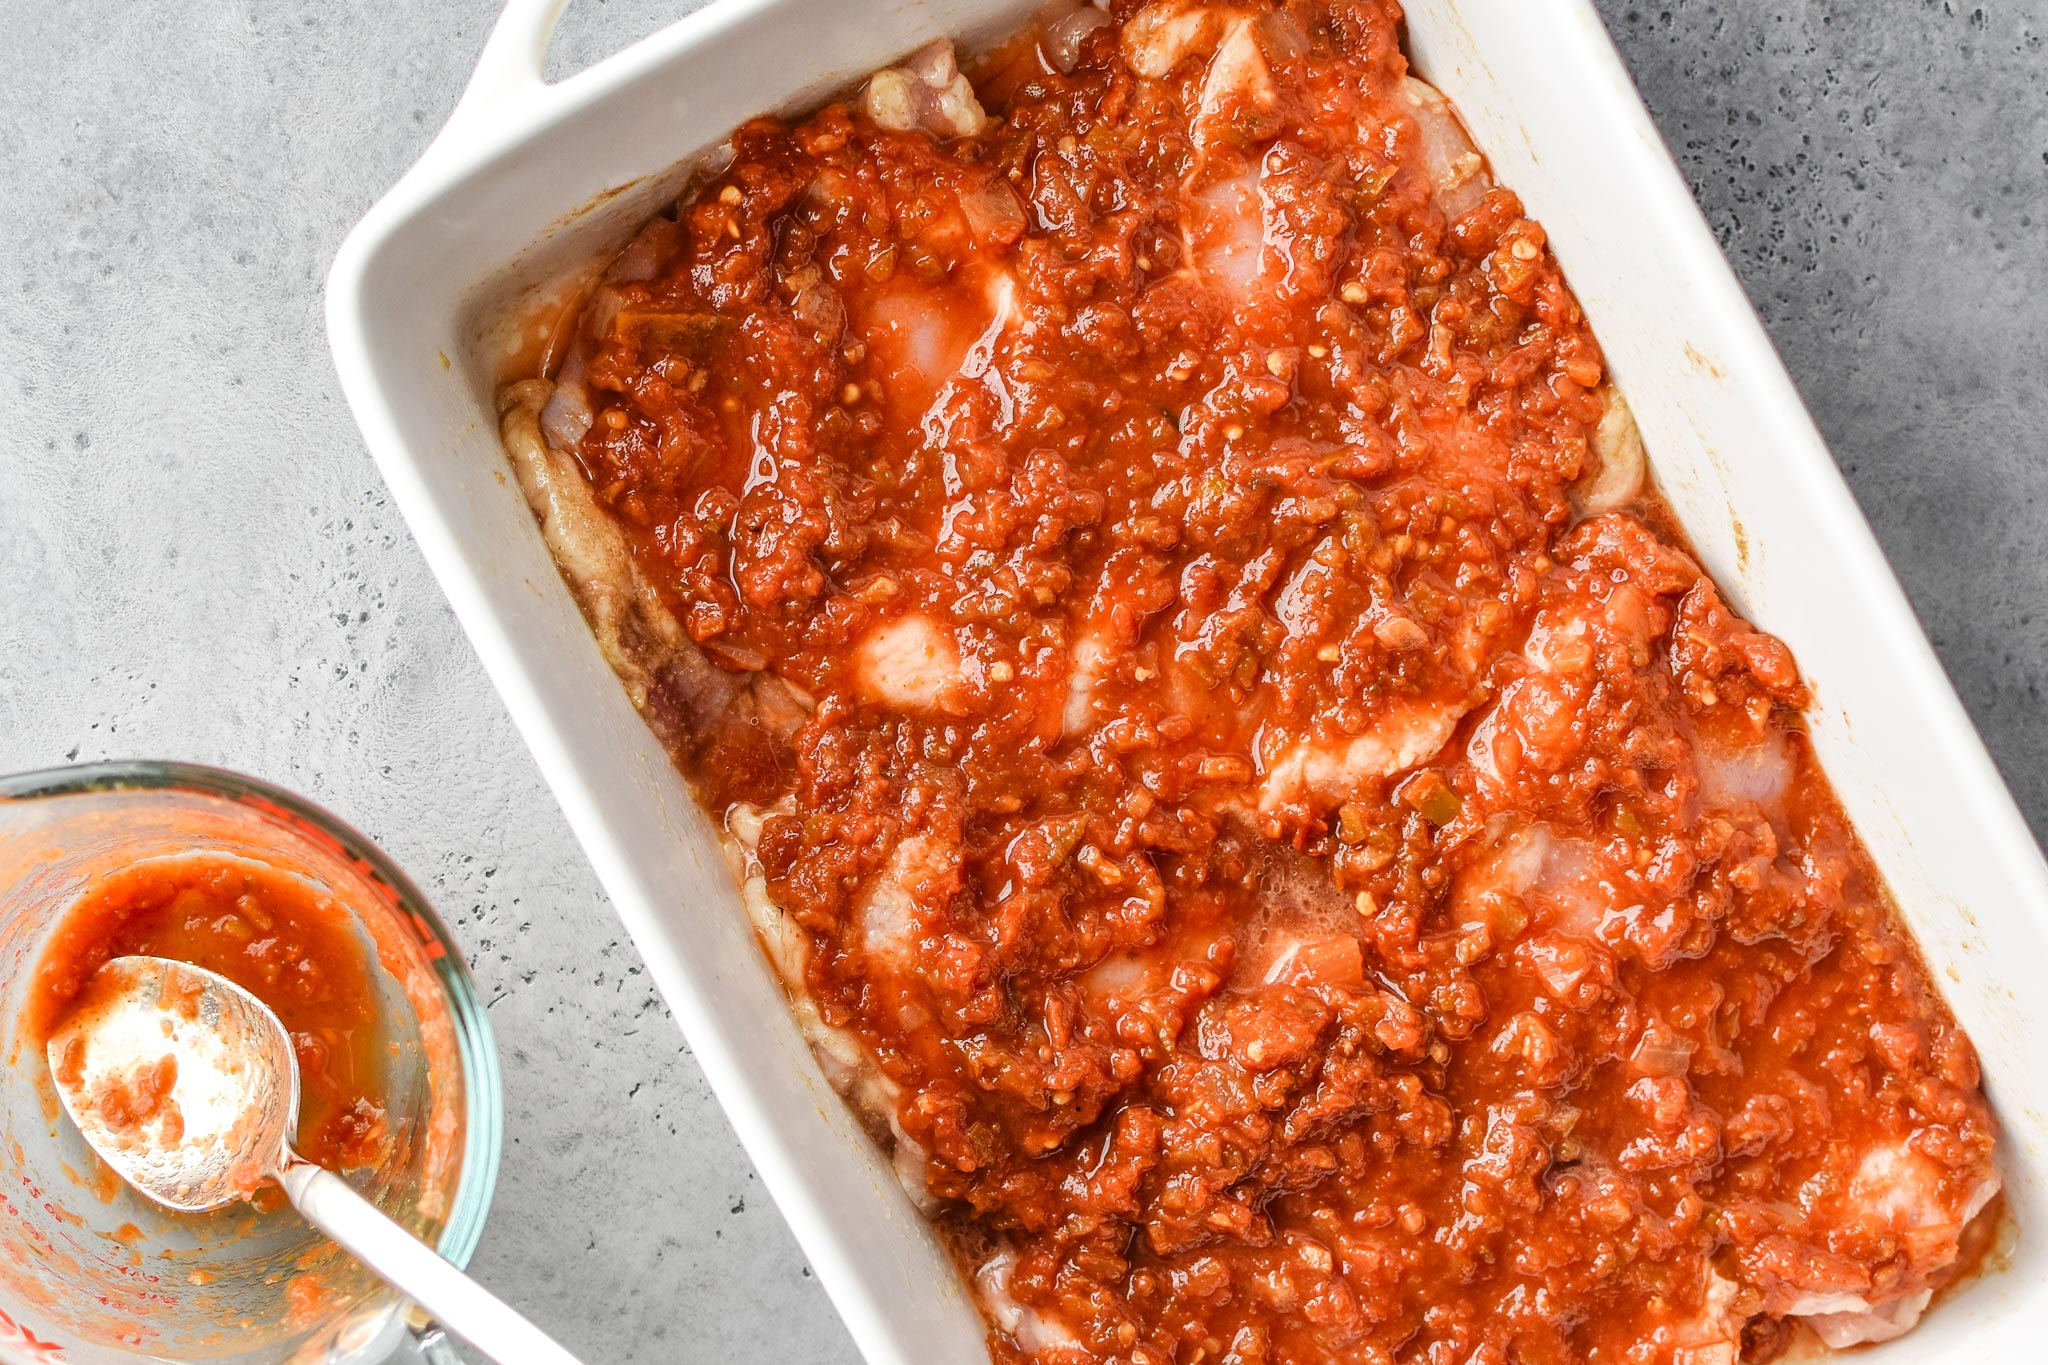 The chicken is covered in salsa for the baked salsa chicken thighs